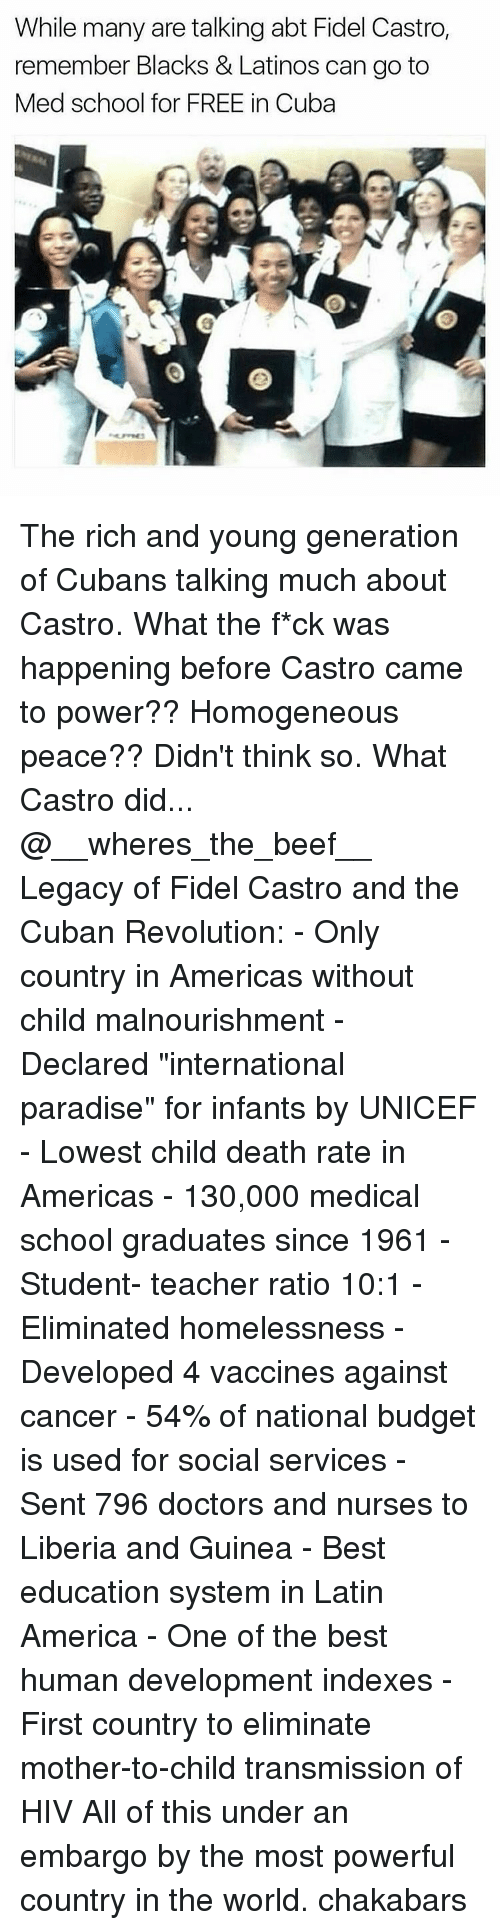 """homogenized: While many are talking abt Fidel Castro,  remember Blacks & Latinos can go to  Med school for FREE in Cuba The rich and young generation of Cubans talking much about Castro. What the f*ck was happening before Castro came to power?? Homogeneous peace?? Didn't think so. What Castro did... @__wheres_the_beef__ Legacy of Fidel Castro and the Cuban Revolution: - Only country in Americas without child malnourishment - Declared """"international paradise"""" for infants by UNICEF - Lowest child death rate in Americas - 130,000 medical school graduates since 1961 - Student- teacher ratio 10:1 - Eliminated homelessness - Developed 4 vaccines against cancer - 54% of national budget is used for social services - Sent 796 doctors and nurses to Liberia and Guinea - Best education system in Latin America - One of the best human development indexes - First country to eliminate mother-to-child transmission of HIV All of this under an embargo by the most powerful country in the world. chakabars"""